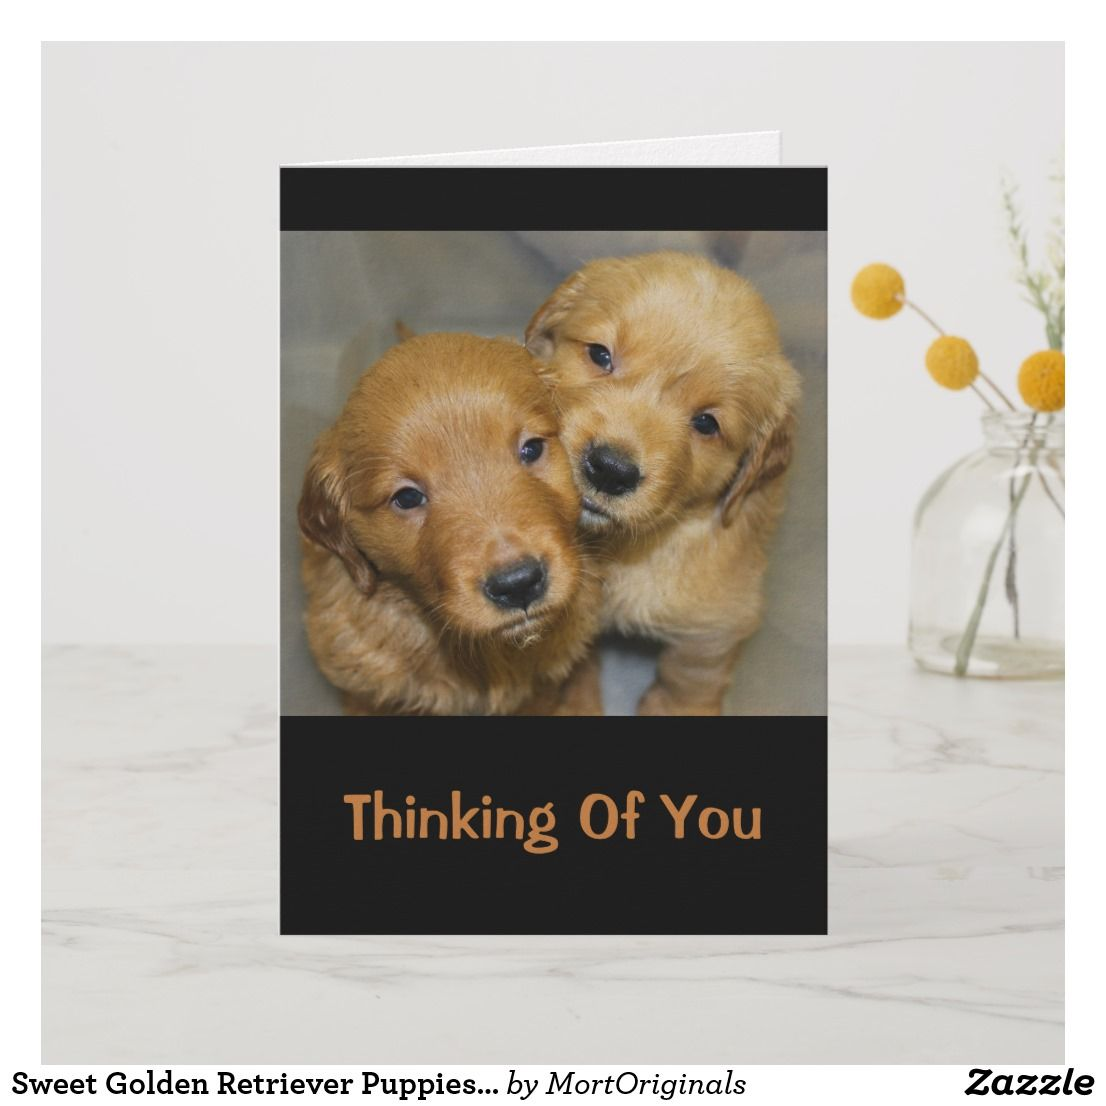 Sweet Golden Retriever Puppies Thinking Of You Card Zazzle Com